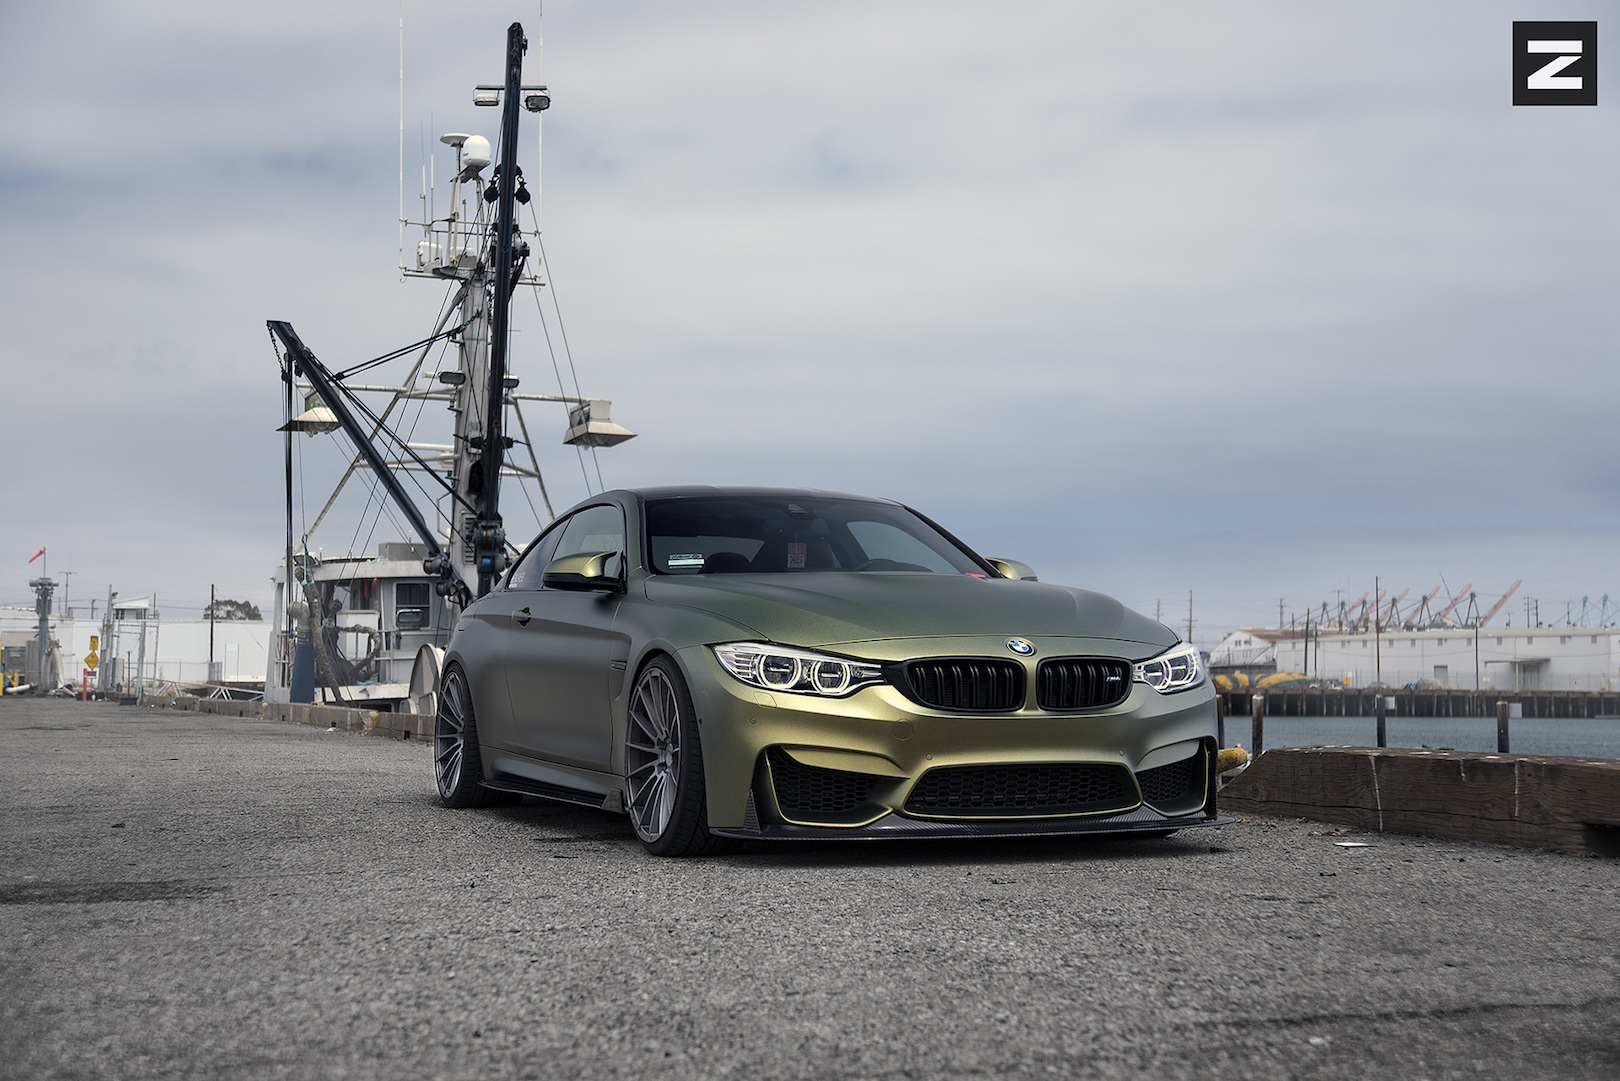 BMW F82 M4 Gold Gunmetal ZS15